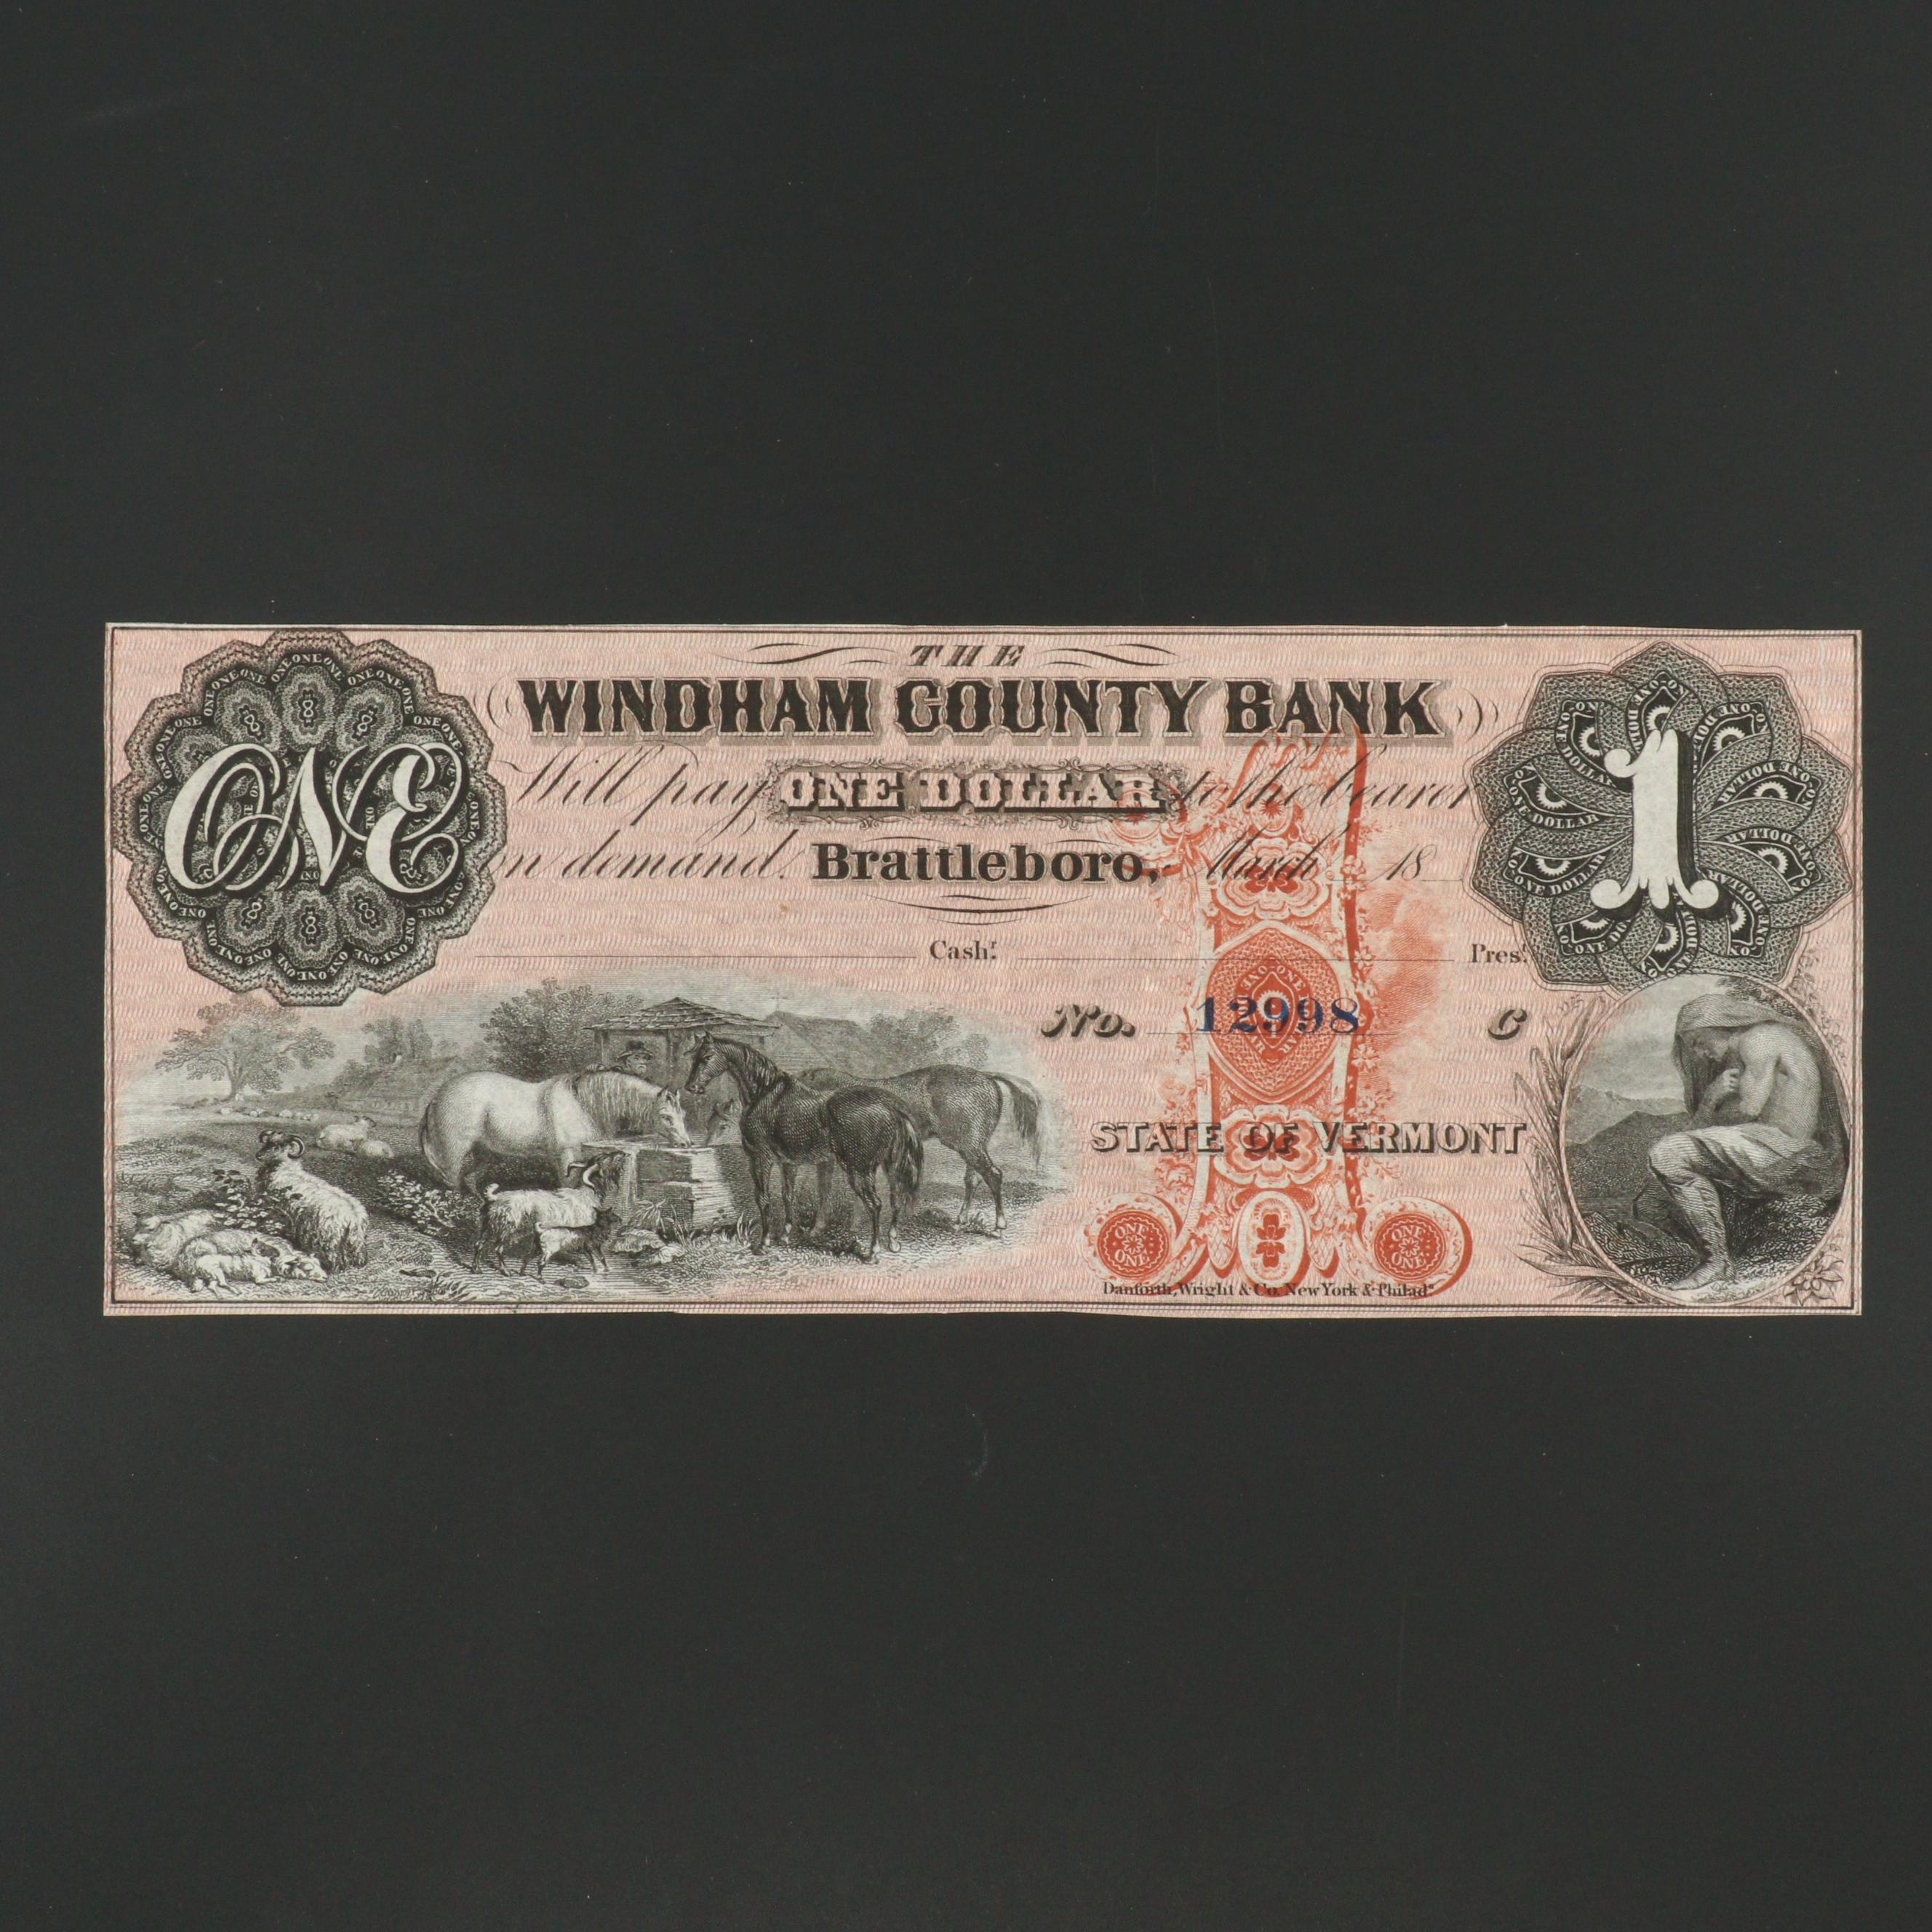 Windham County Bank, Vermont, $1 Obsolete Banknote From the 1860s